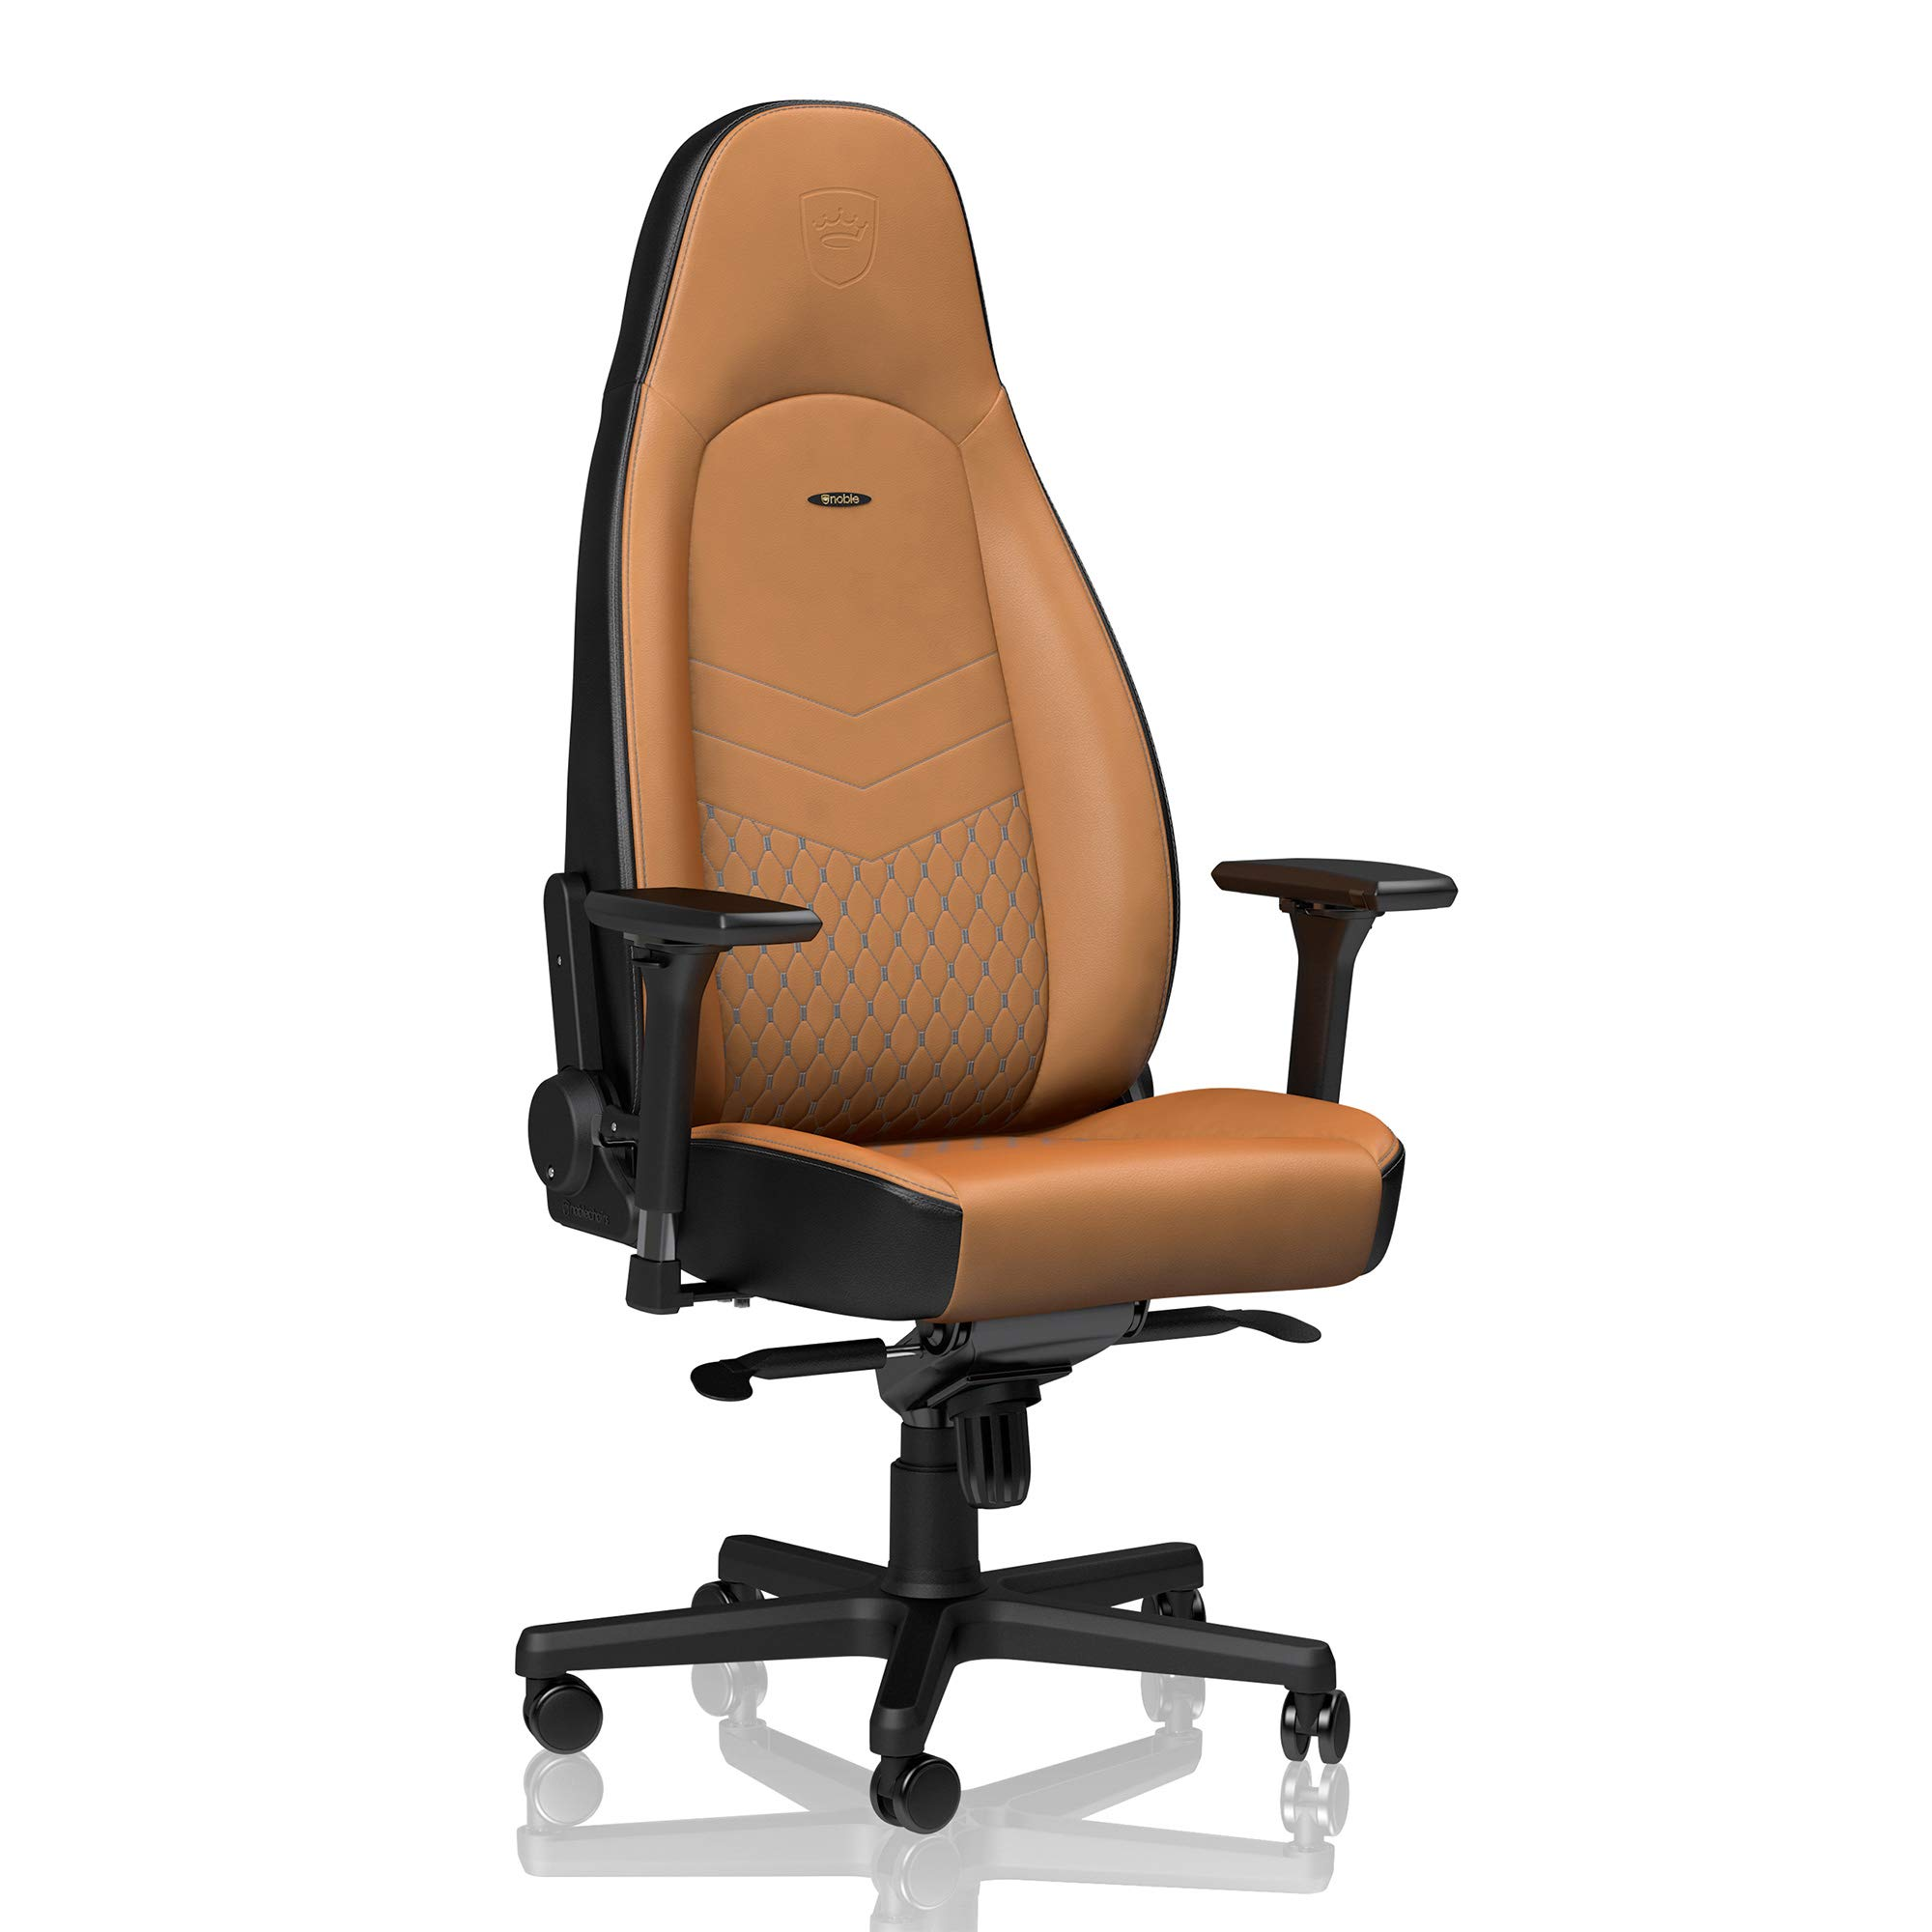 noblechairs ICON Gaming Chair - Office Chair - Desk Chair - Real Leather - Ergonomic - Cold Foam Upholstery - 330 lbs - Racing Seat Design - Cognac/Blue/Gunmetal by noblechairs